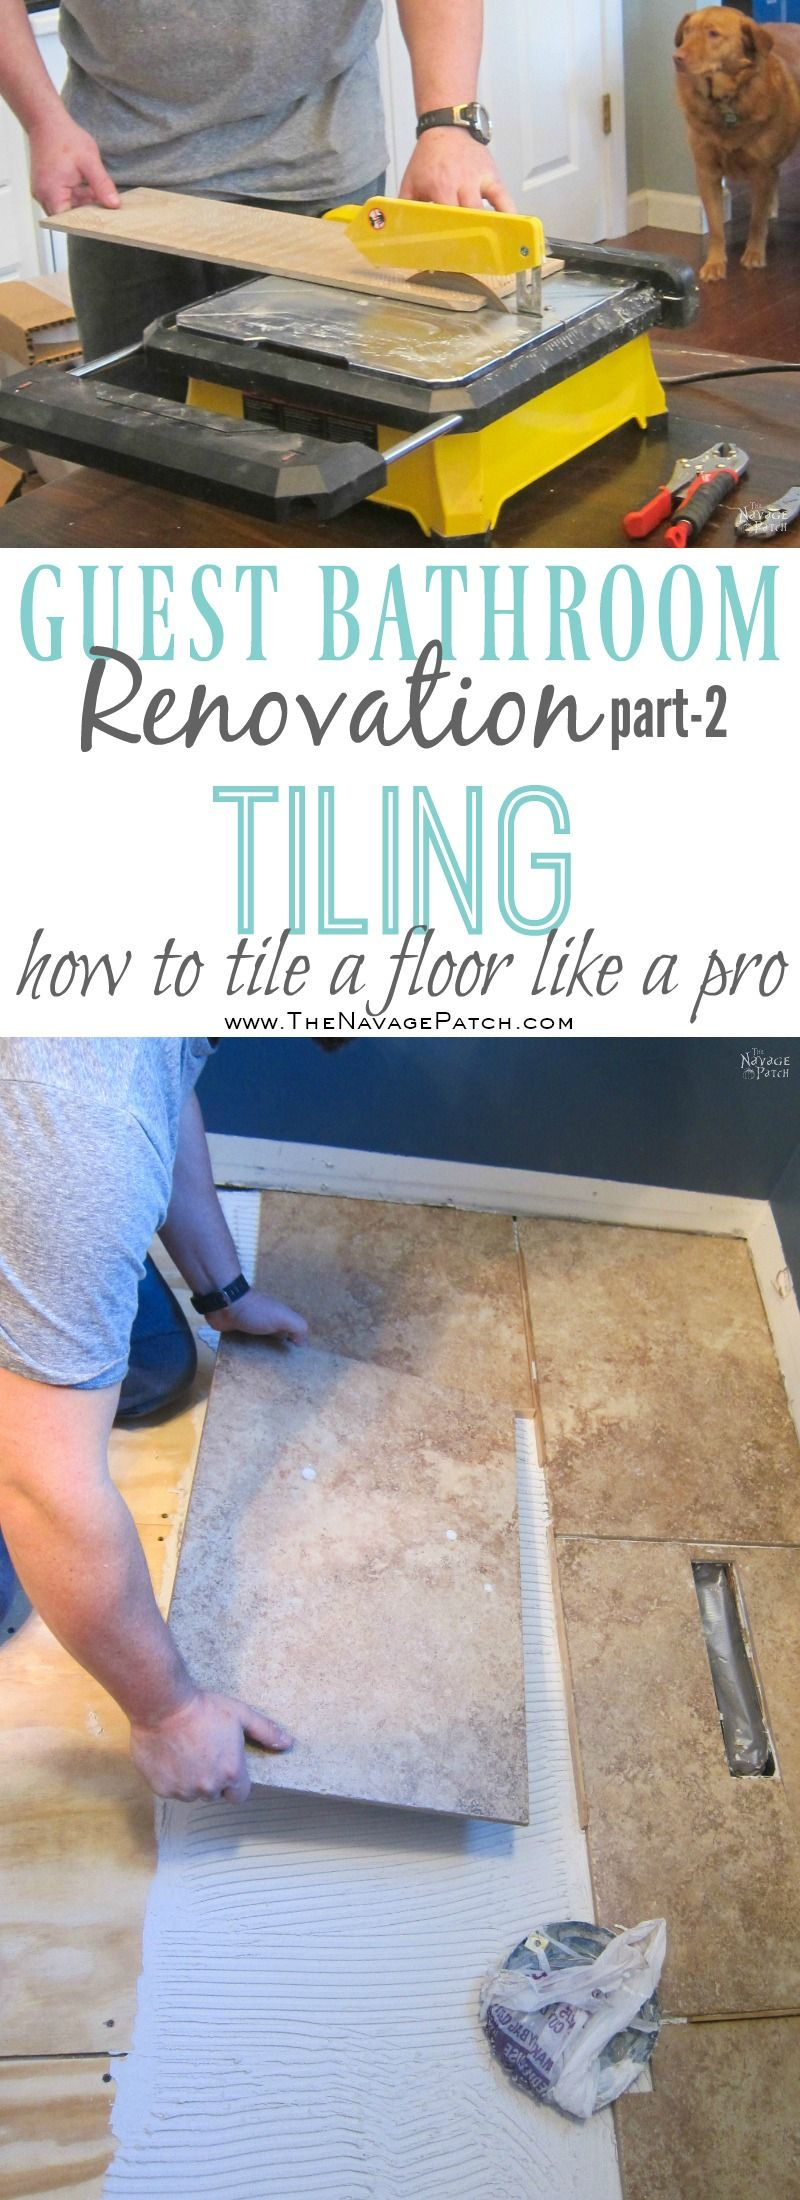 Guest Bathroom Renovation | How to tile a floor like a pro | DIY floor tiling | How to cut tiles | How to repair broken ceramic tiles | How to lay subfloor | DIY subflooring | How to grout tiles | DIY tile grouting and sealing | How to seal your tiles and grouting | DIY bathroom flooring | When to use concrete board as subfloor | How to choose grout color | DIY tile spacers | How to lay tiles | DIY tile installation | How to install ceramic tiles | DIY porcelain tiling | Before & After | DIY Bathroom Renovation | TheNavagePatch.com